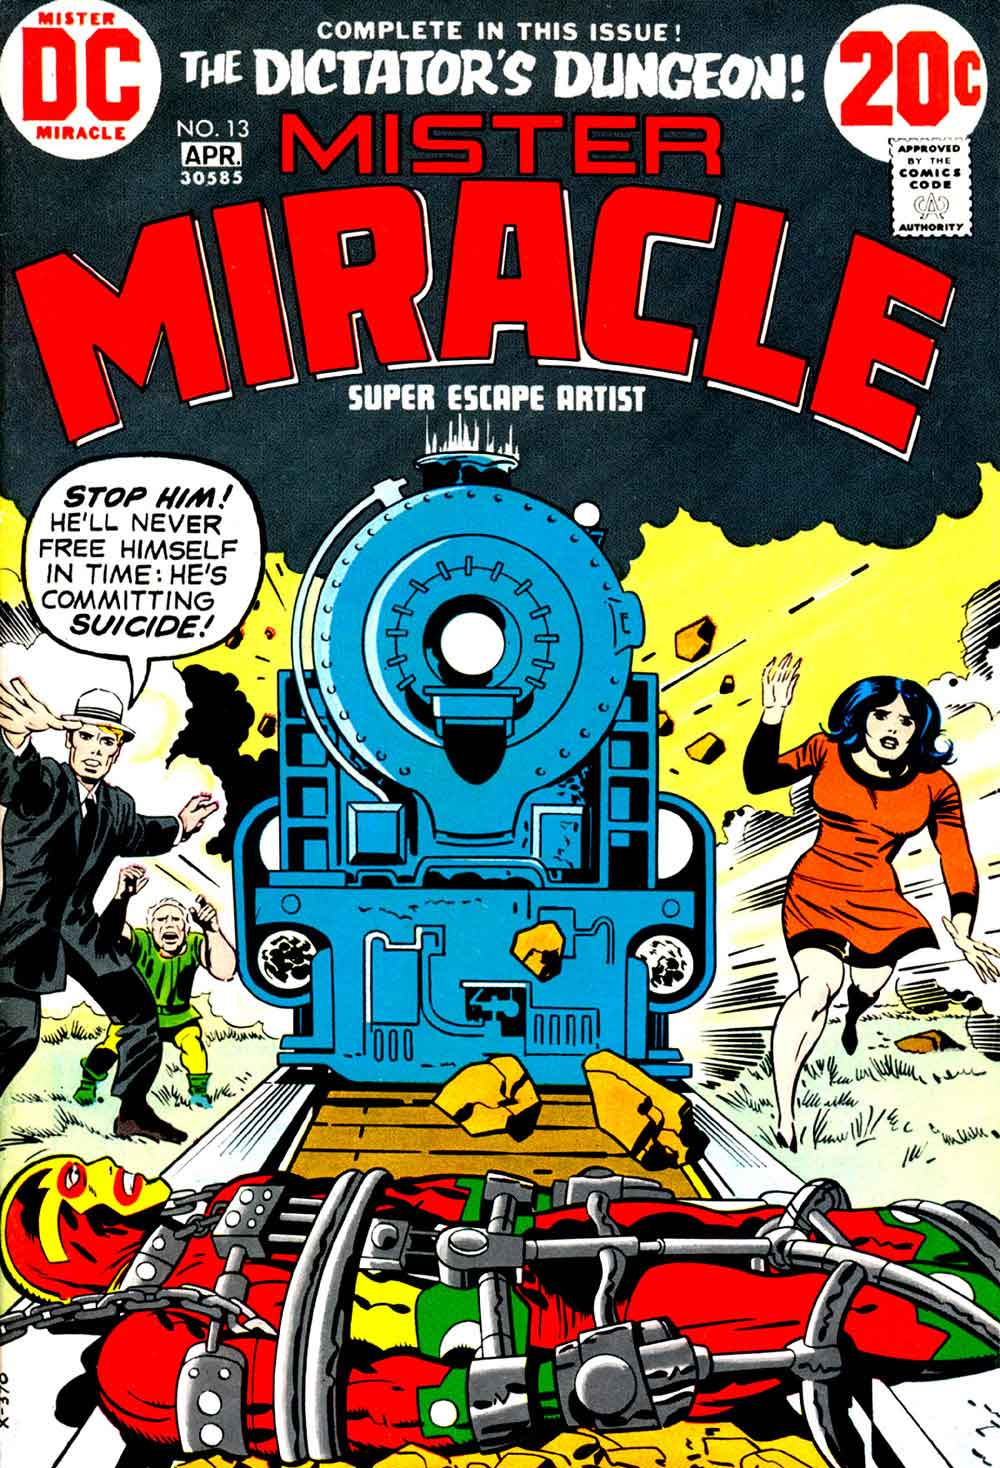 Mister Miracle v1 #13 dc bronze age comic book cover art by Jack Kirby